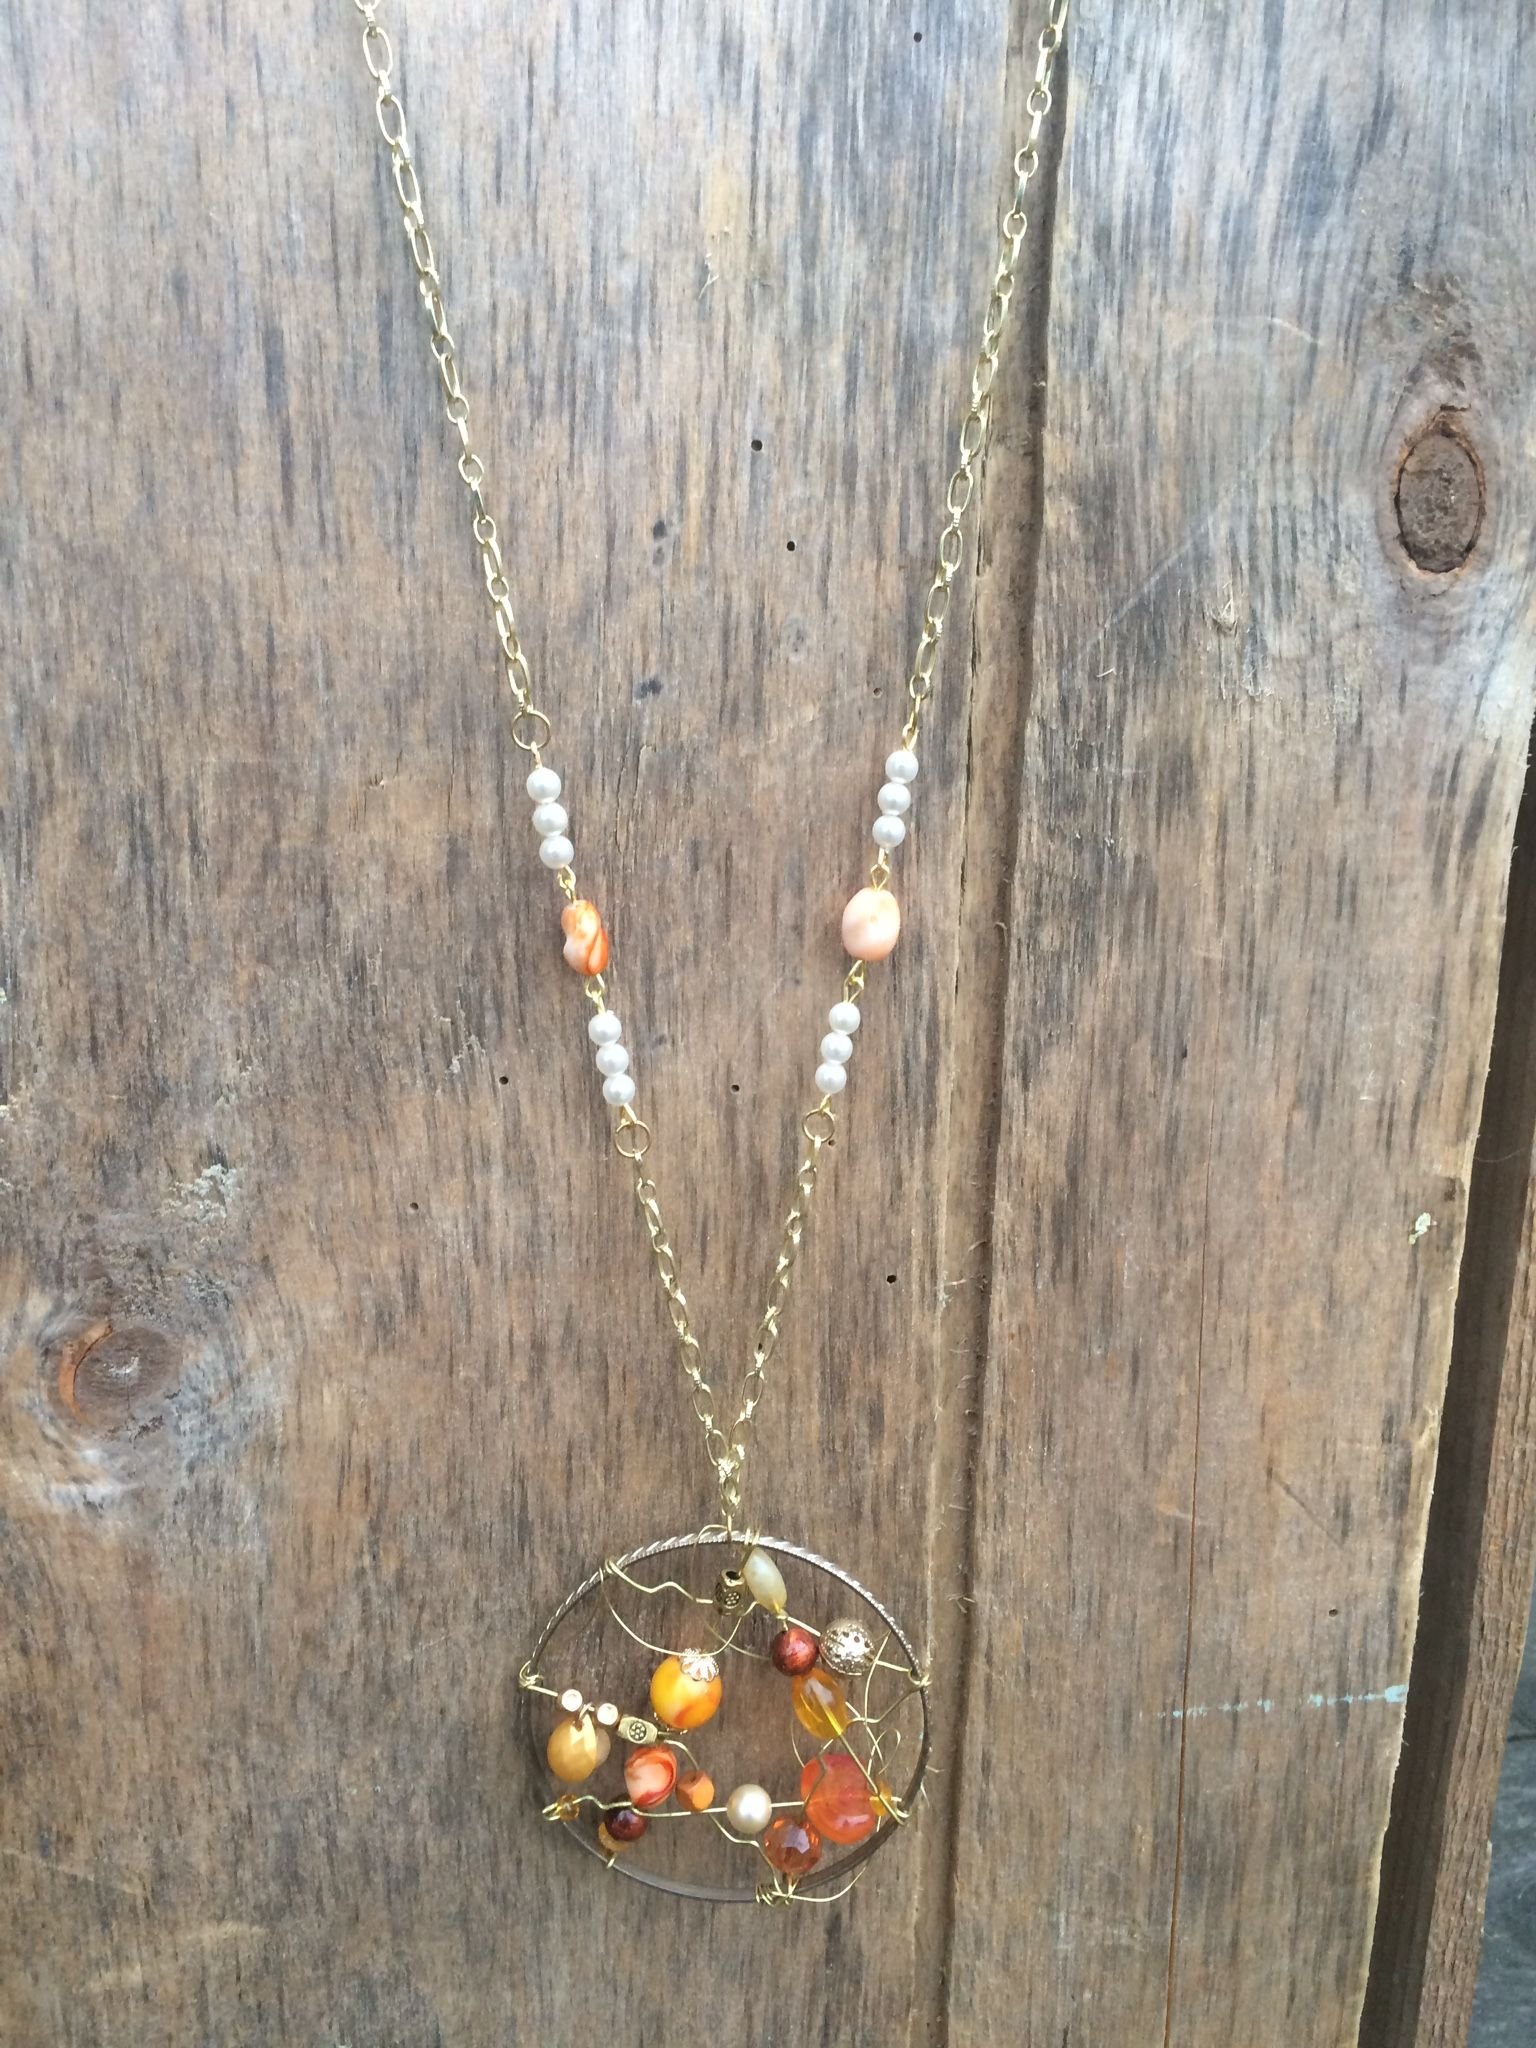 Handmade dreamcatcher necklace $68 at https://www.etsy.com/ca/shop/Relovedco